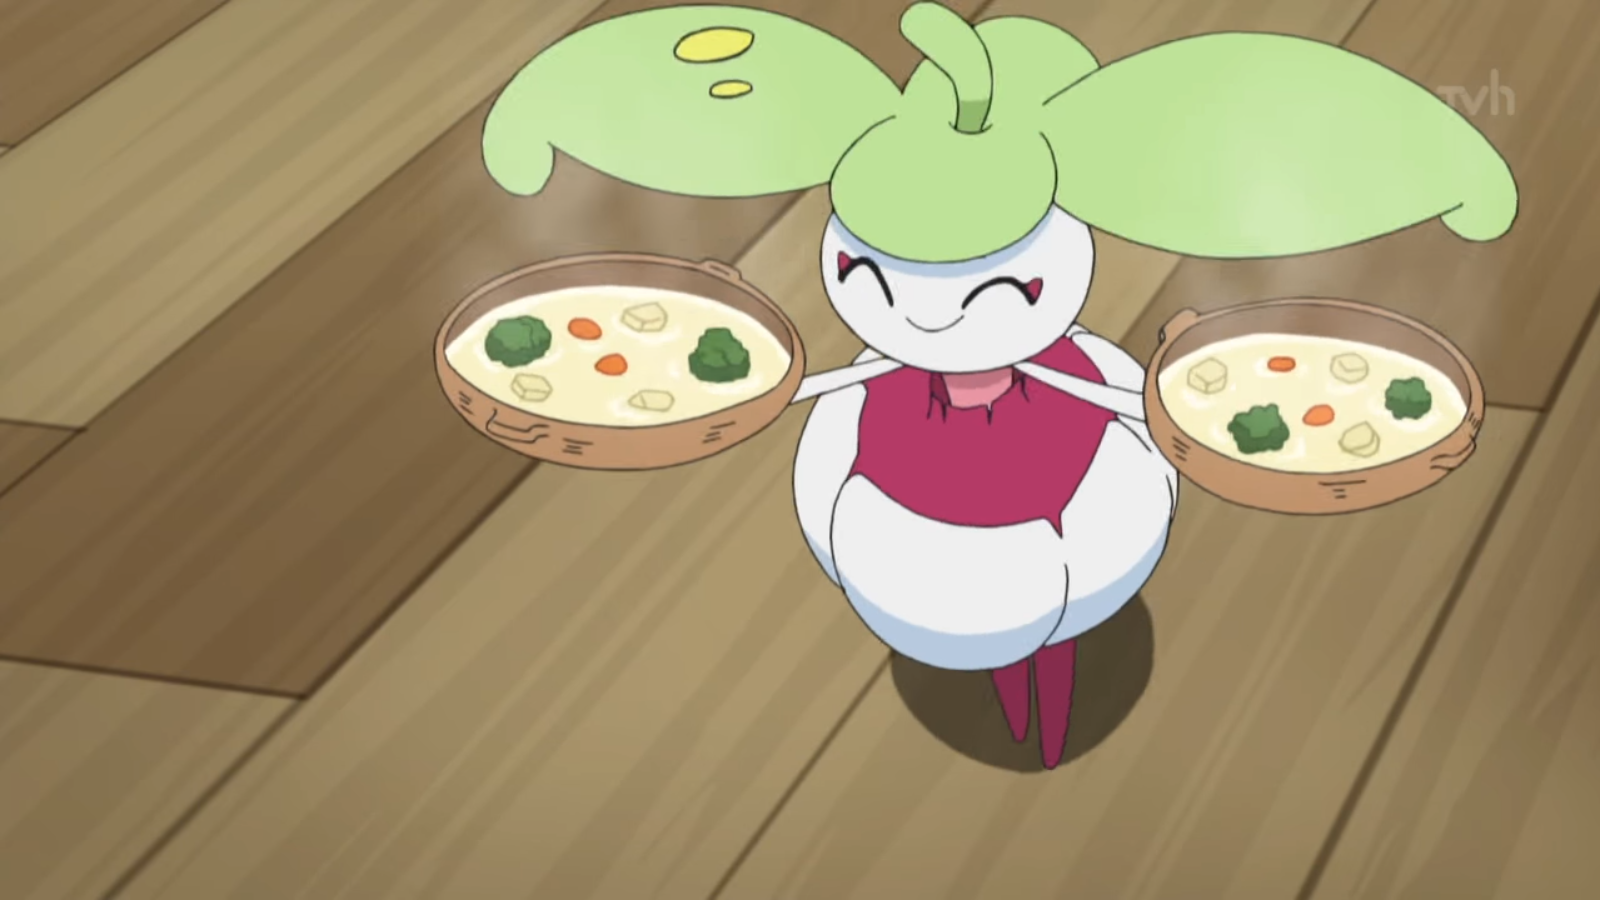 Pok mon anime daily sun moon episode 18 summary review for Pokemon cuisine